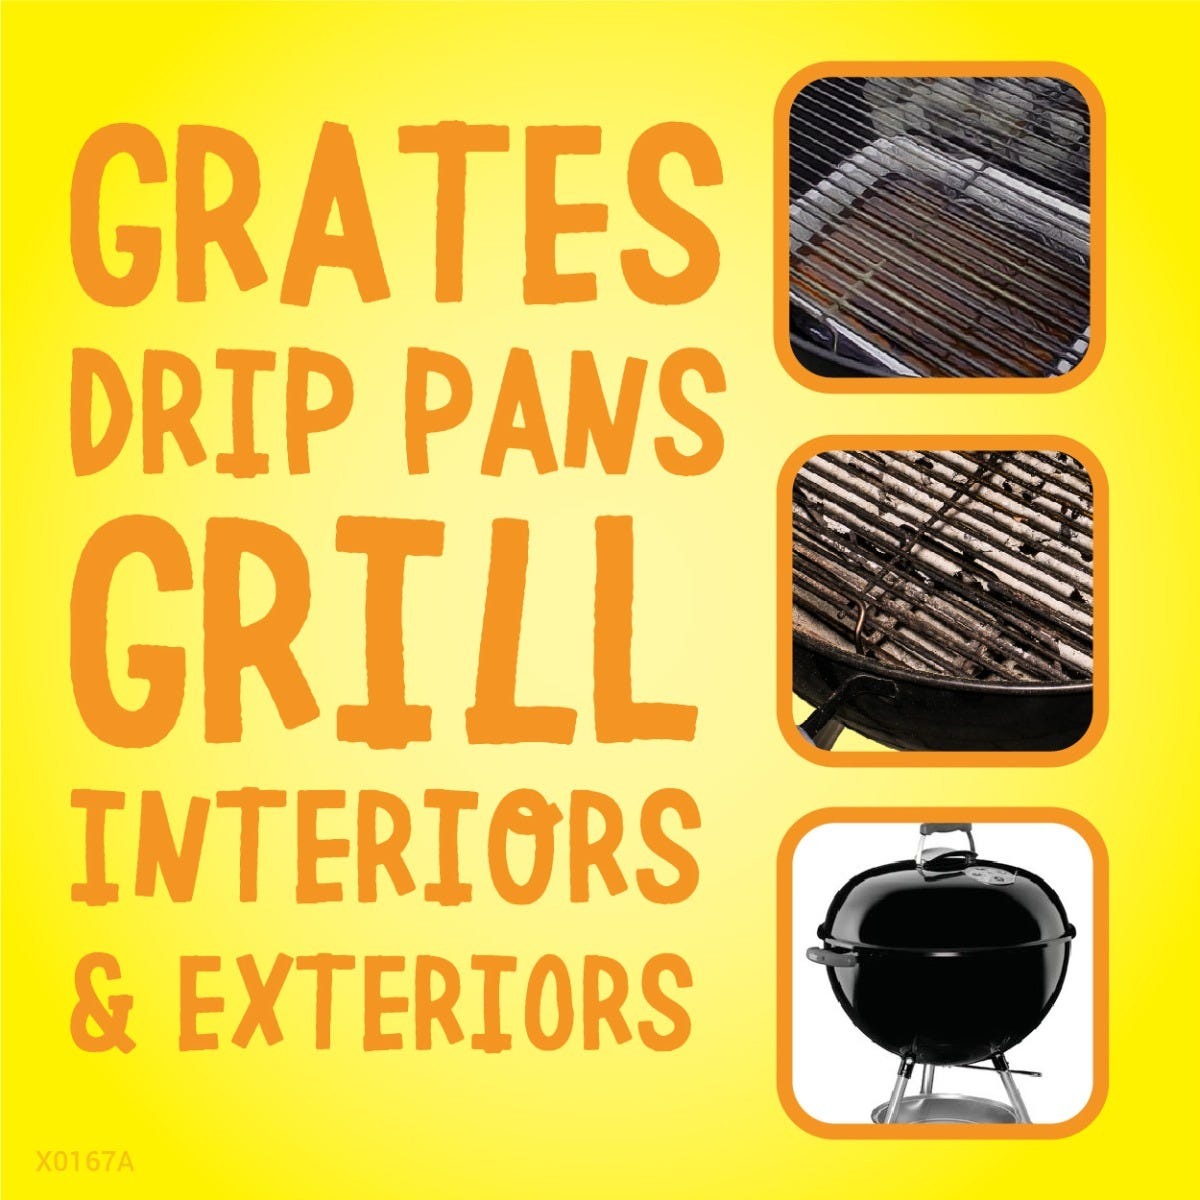 Use on grates, drip pans, interiors and exteriors